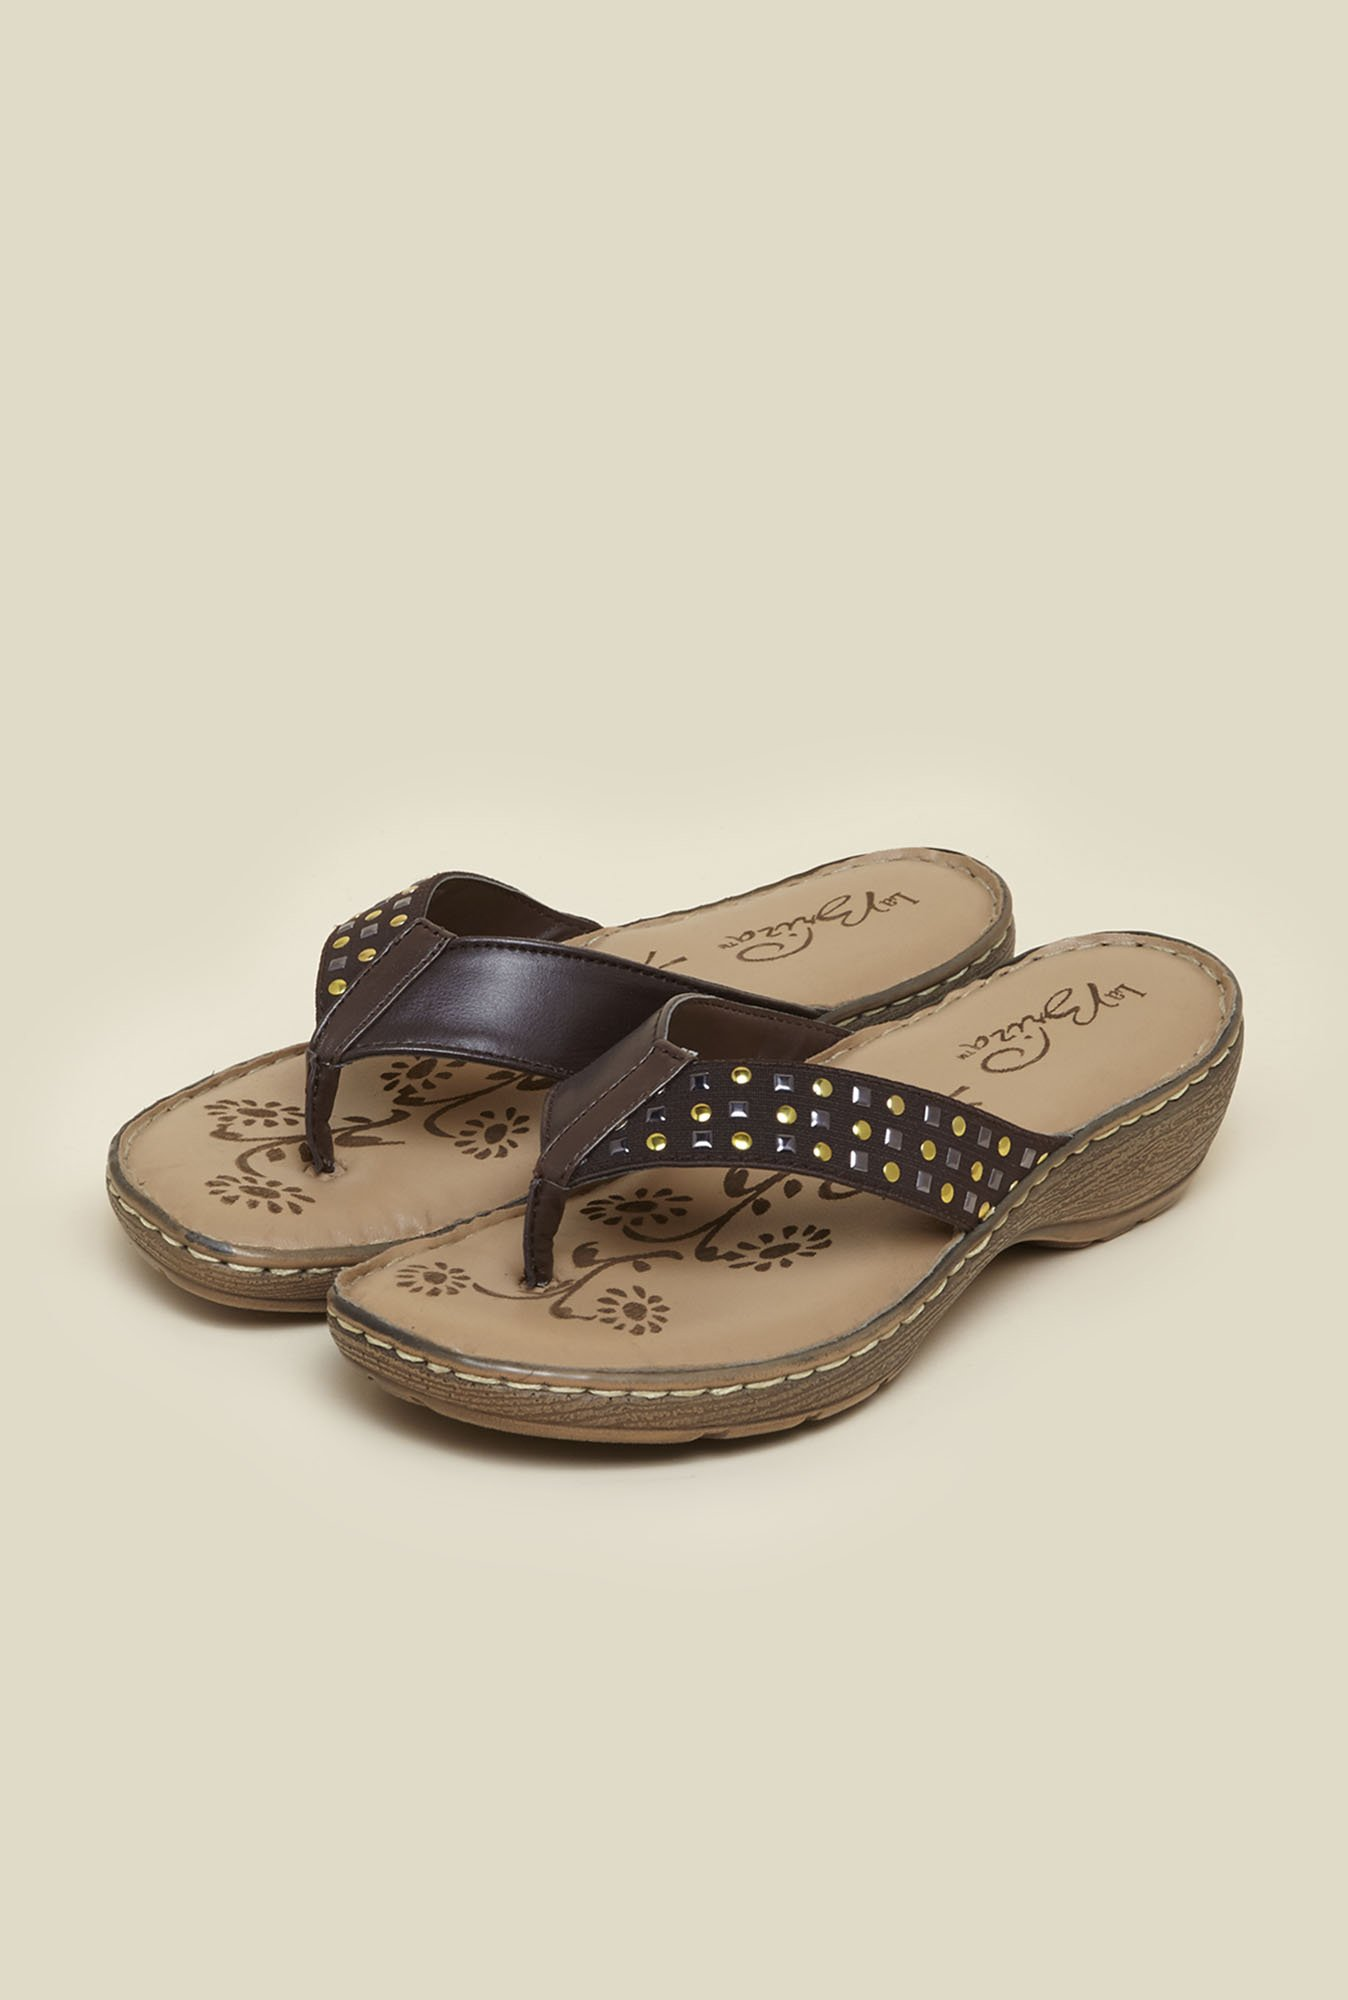 La Briza Brown Wedges